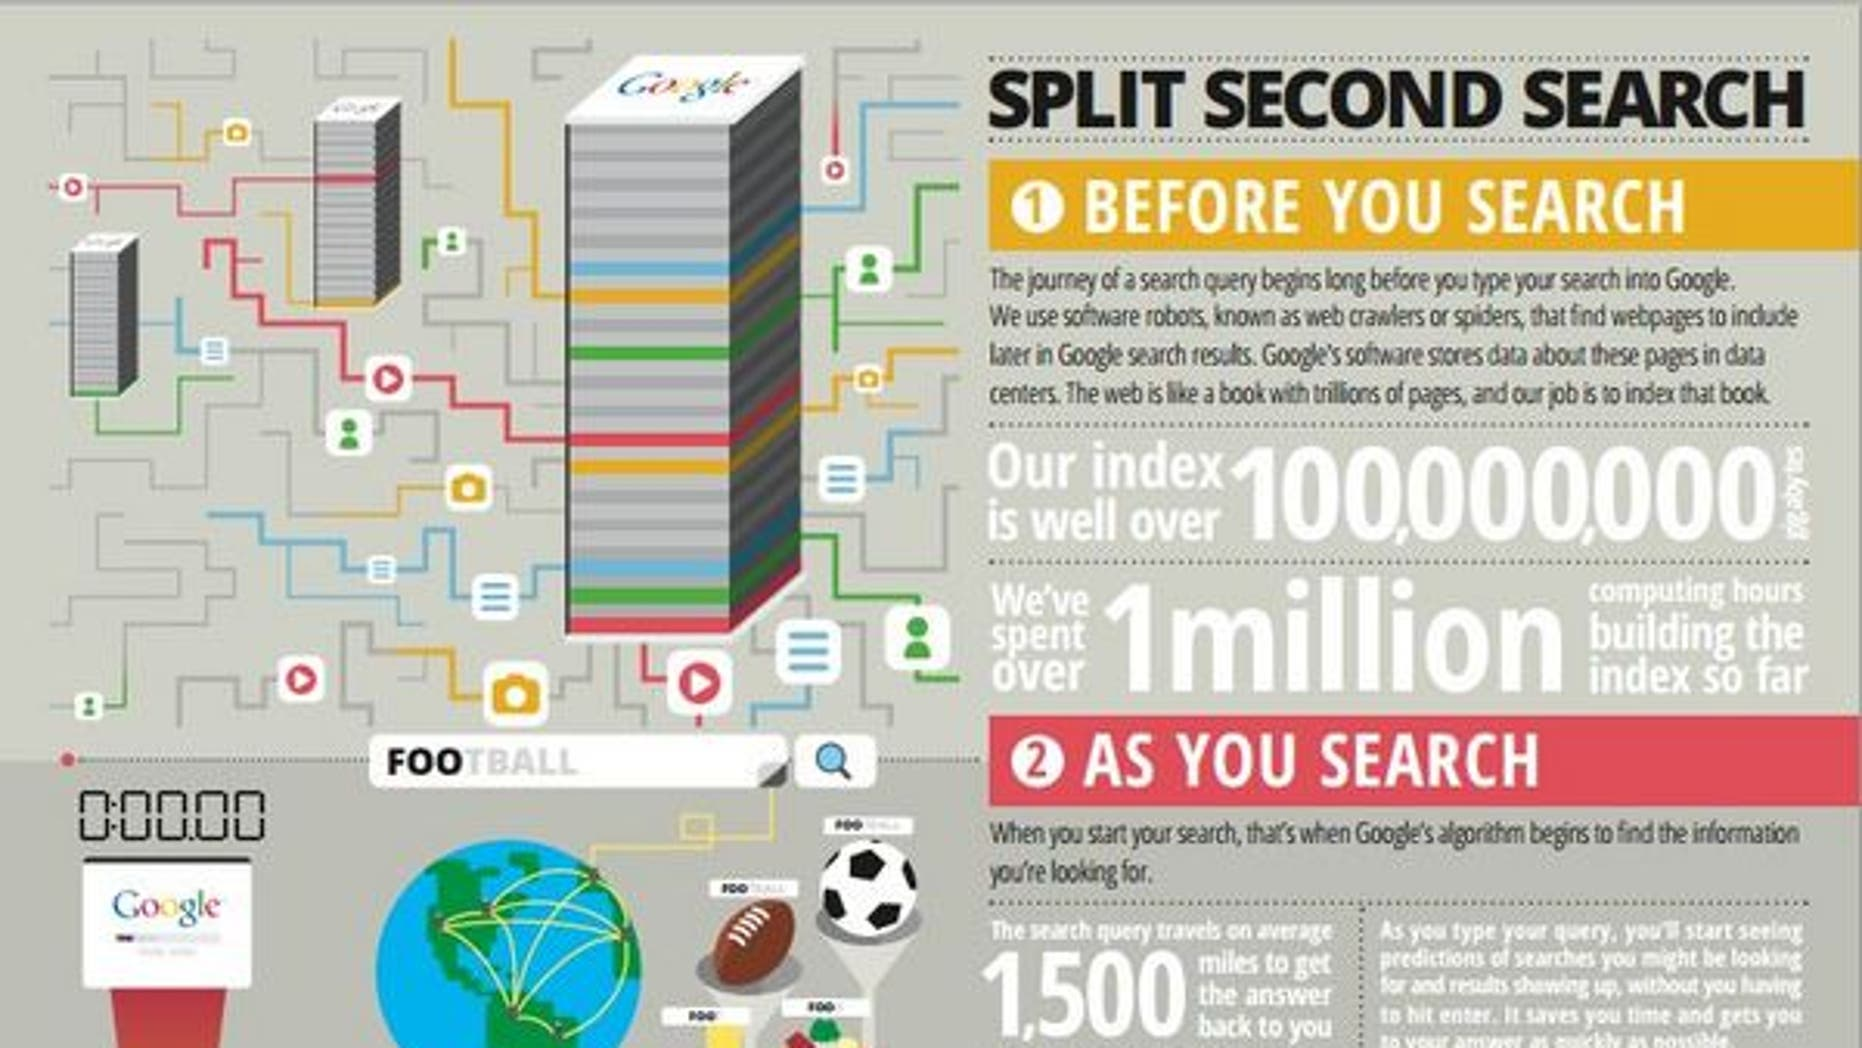 Numbers illustrate complexity and sheer volume of Google searches and results.